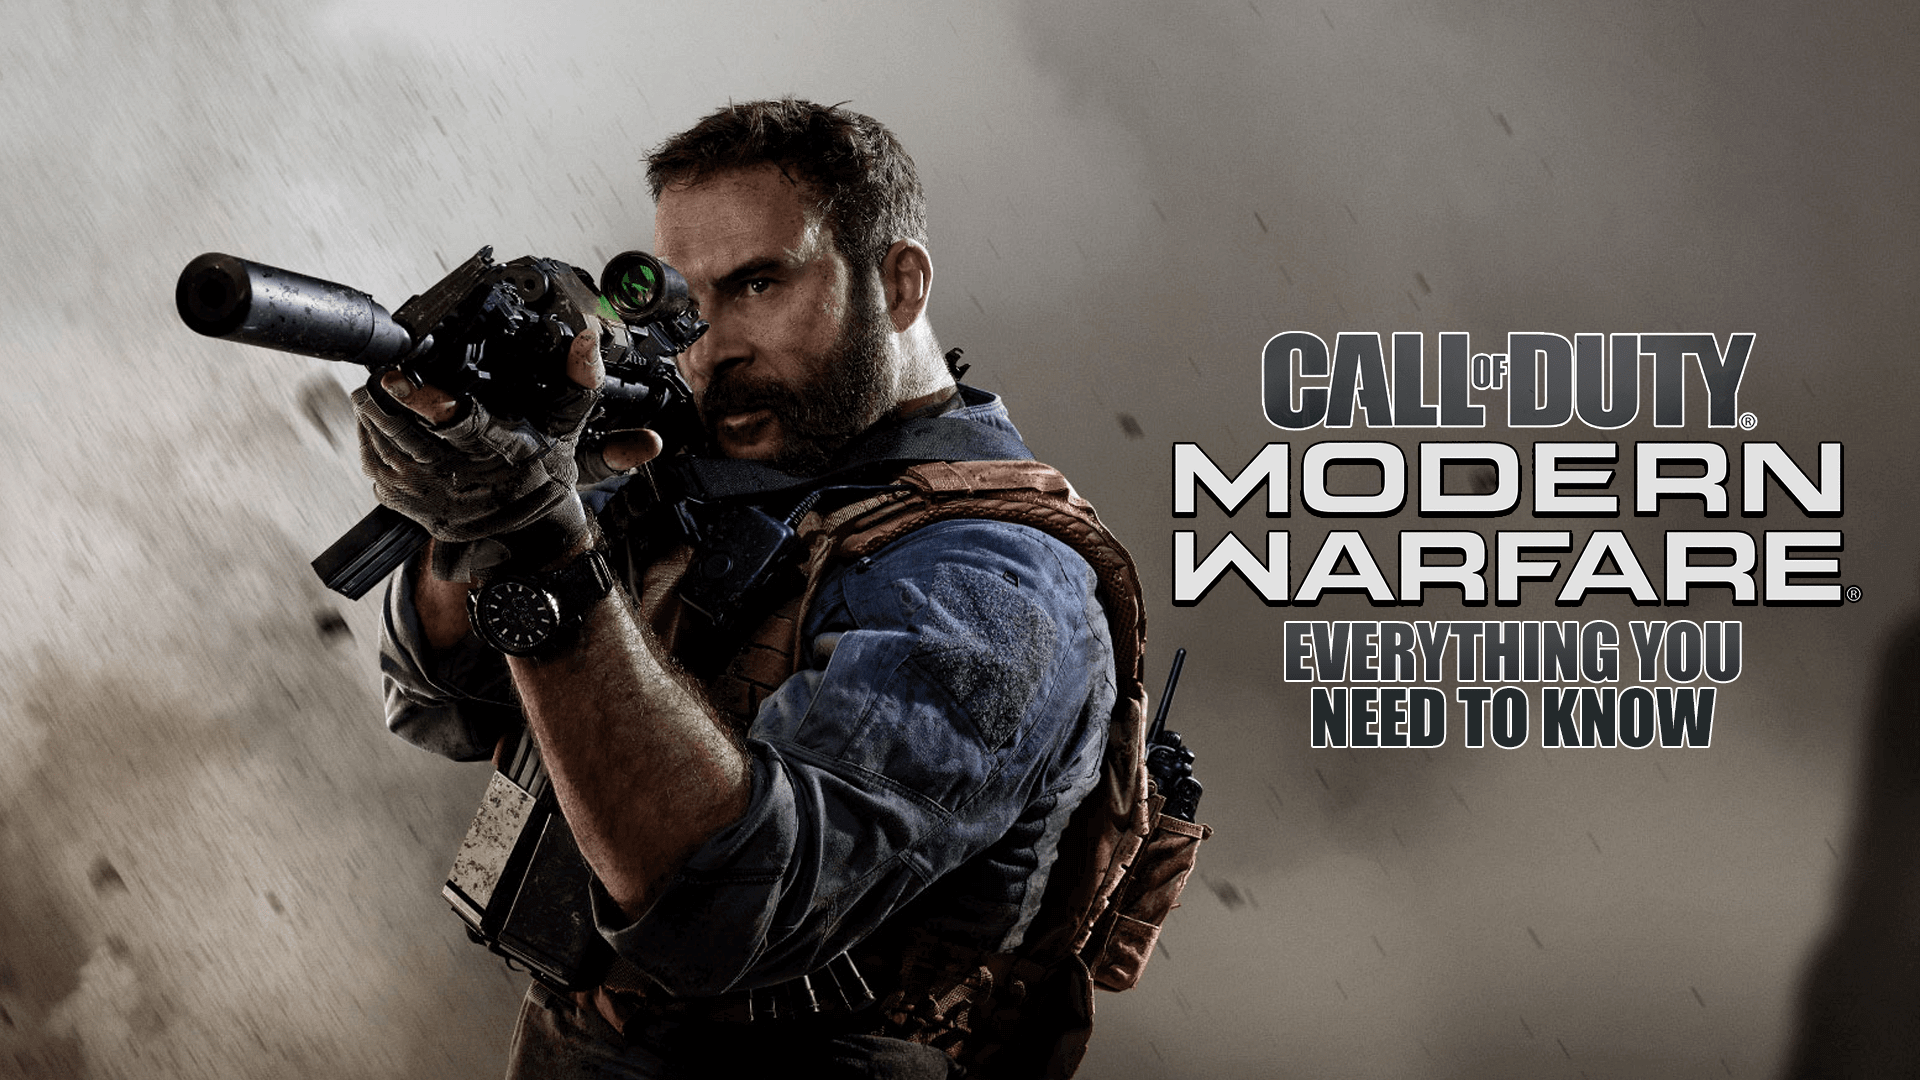 Call Of Duty Modern Warfare 2019 Absolutely Everything You Need